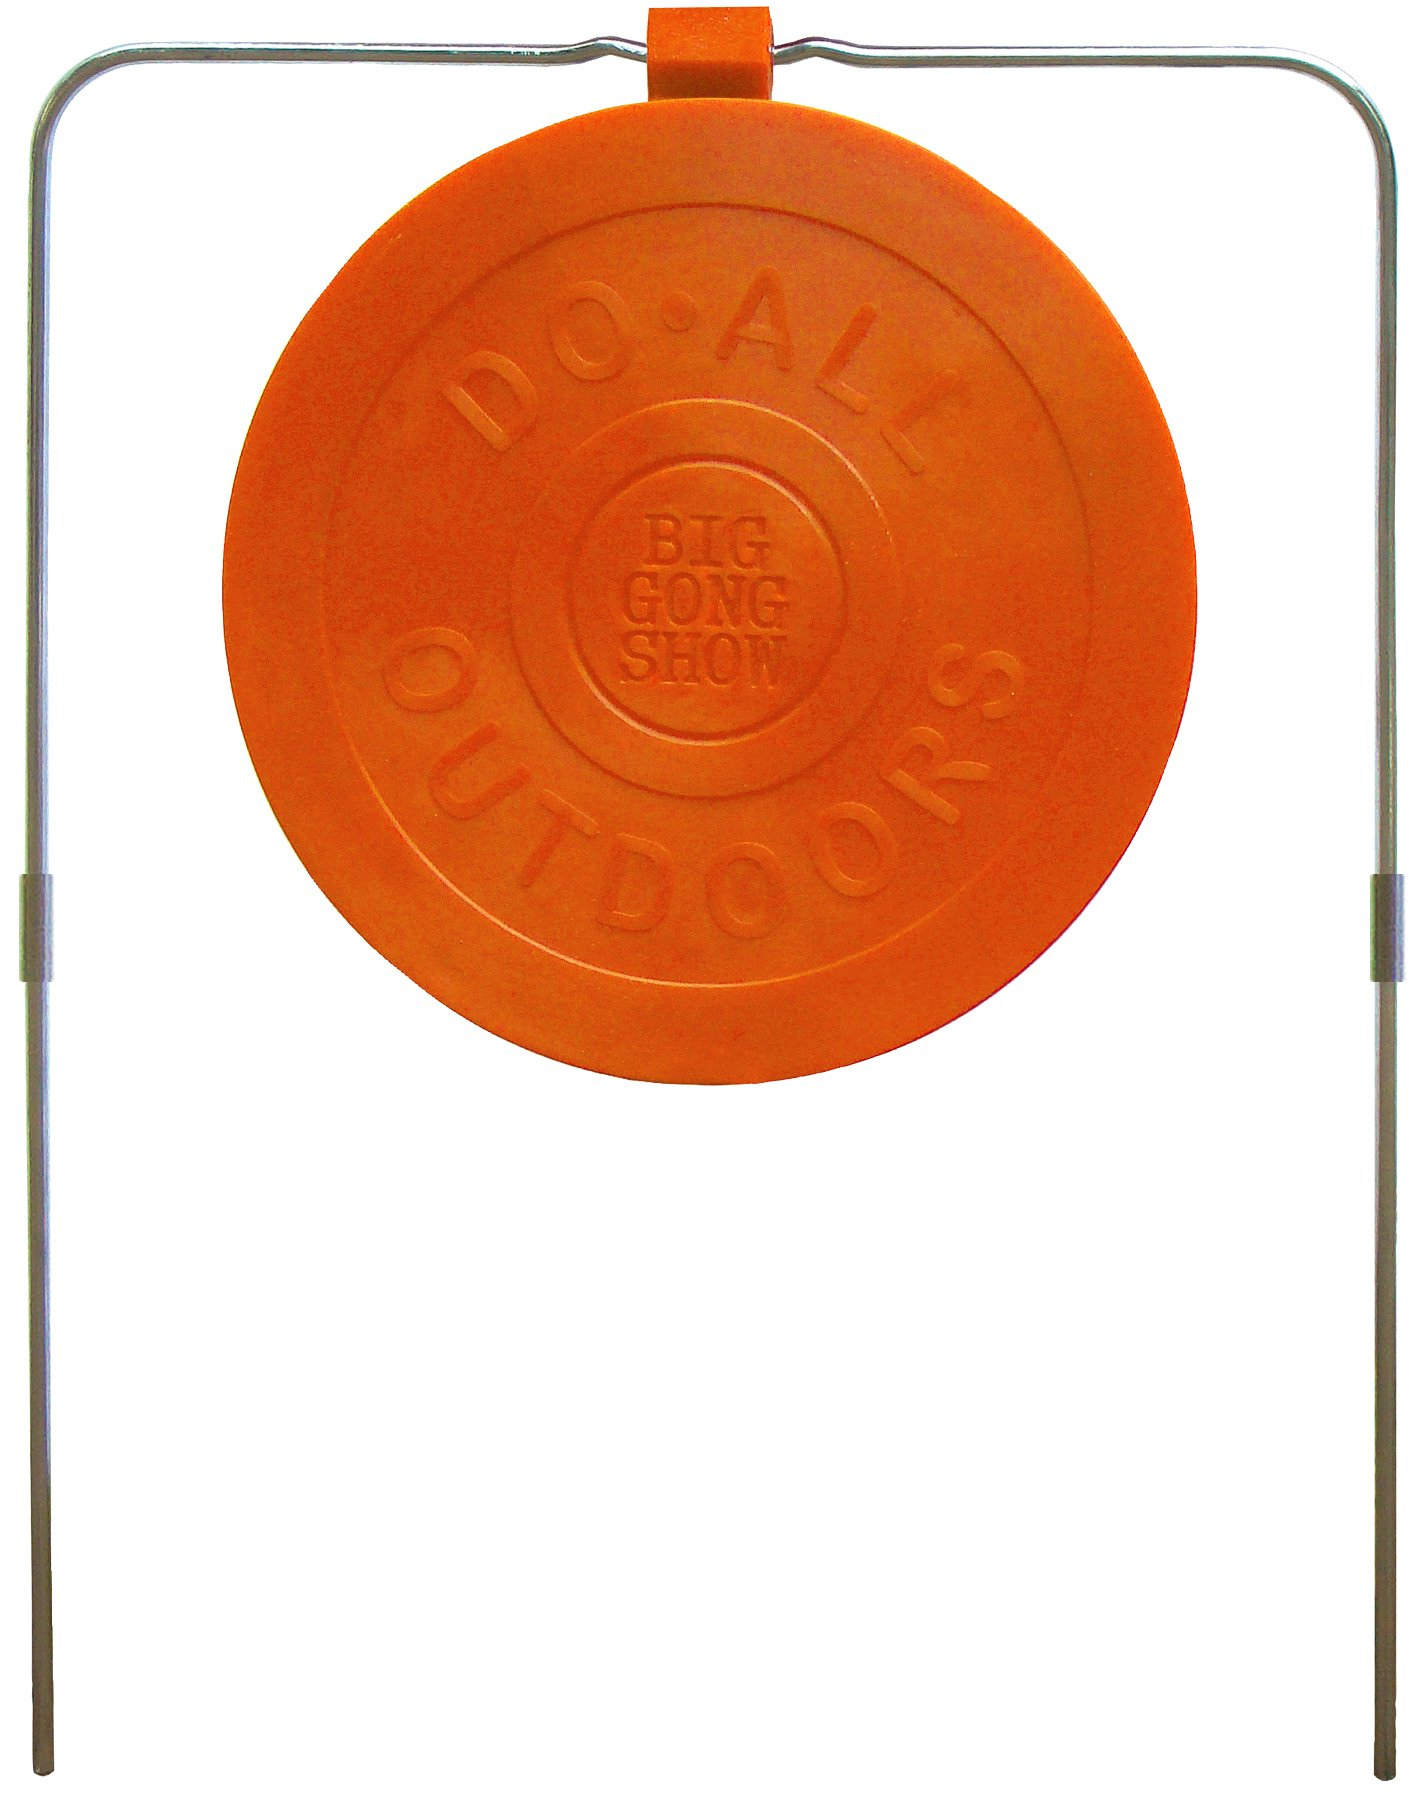 Do-All Outdoors - Big Gong Show 9'' Self-Healing Target, Rated for .22- .50 Caliber